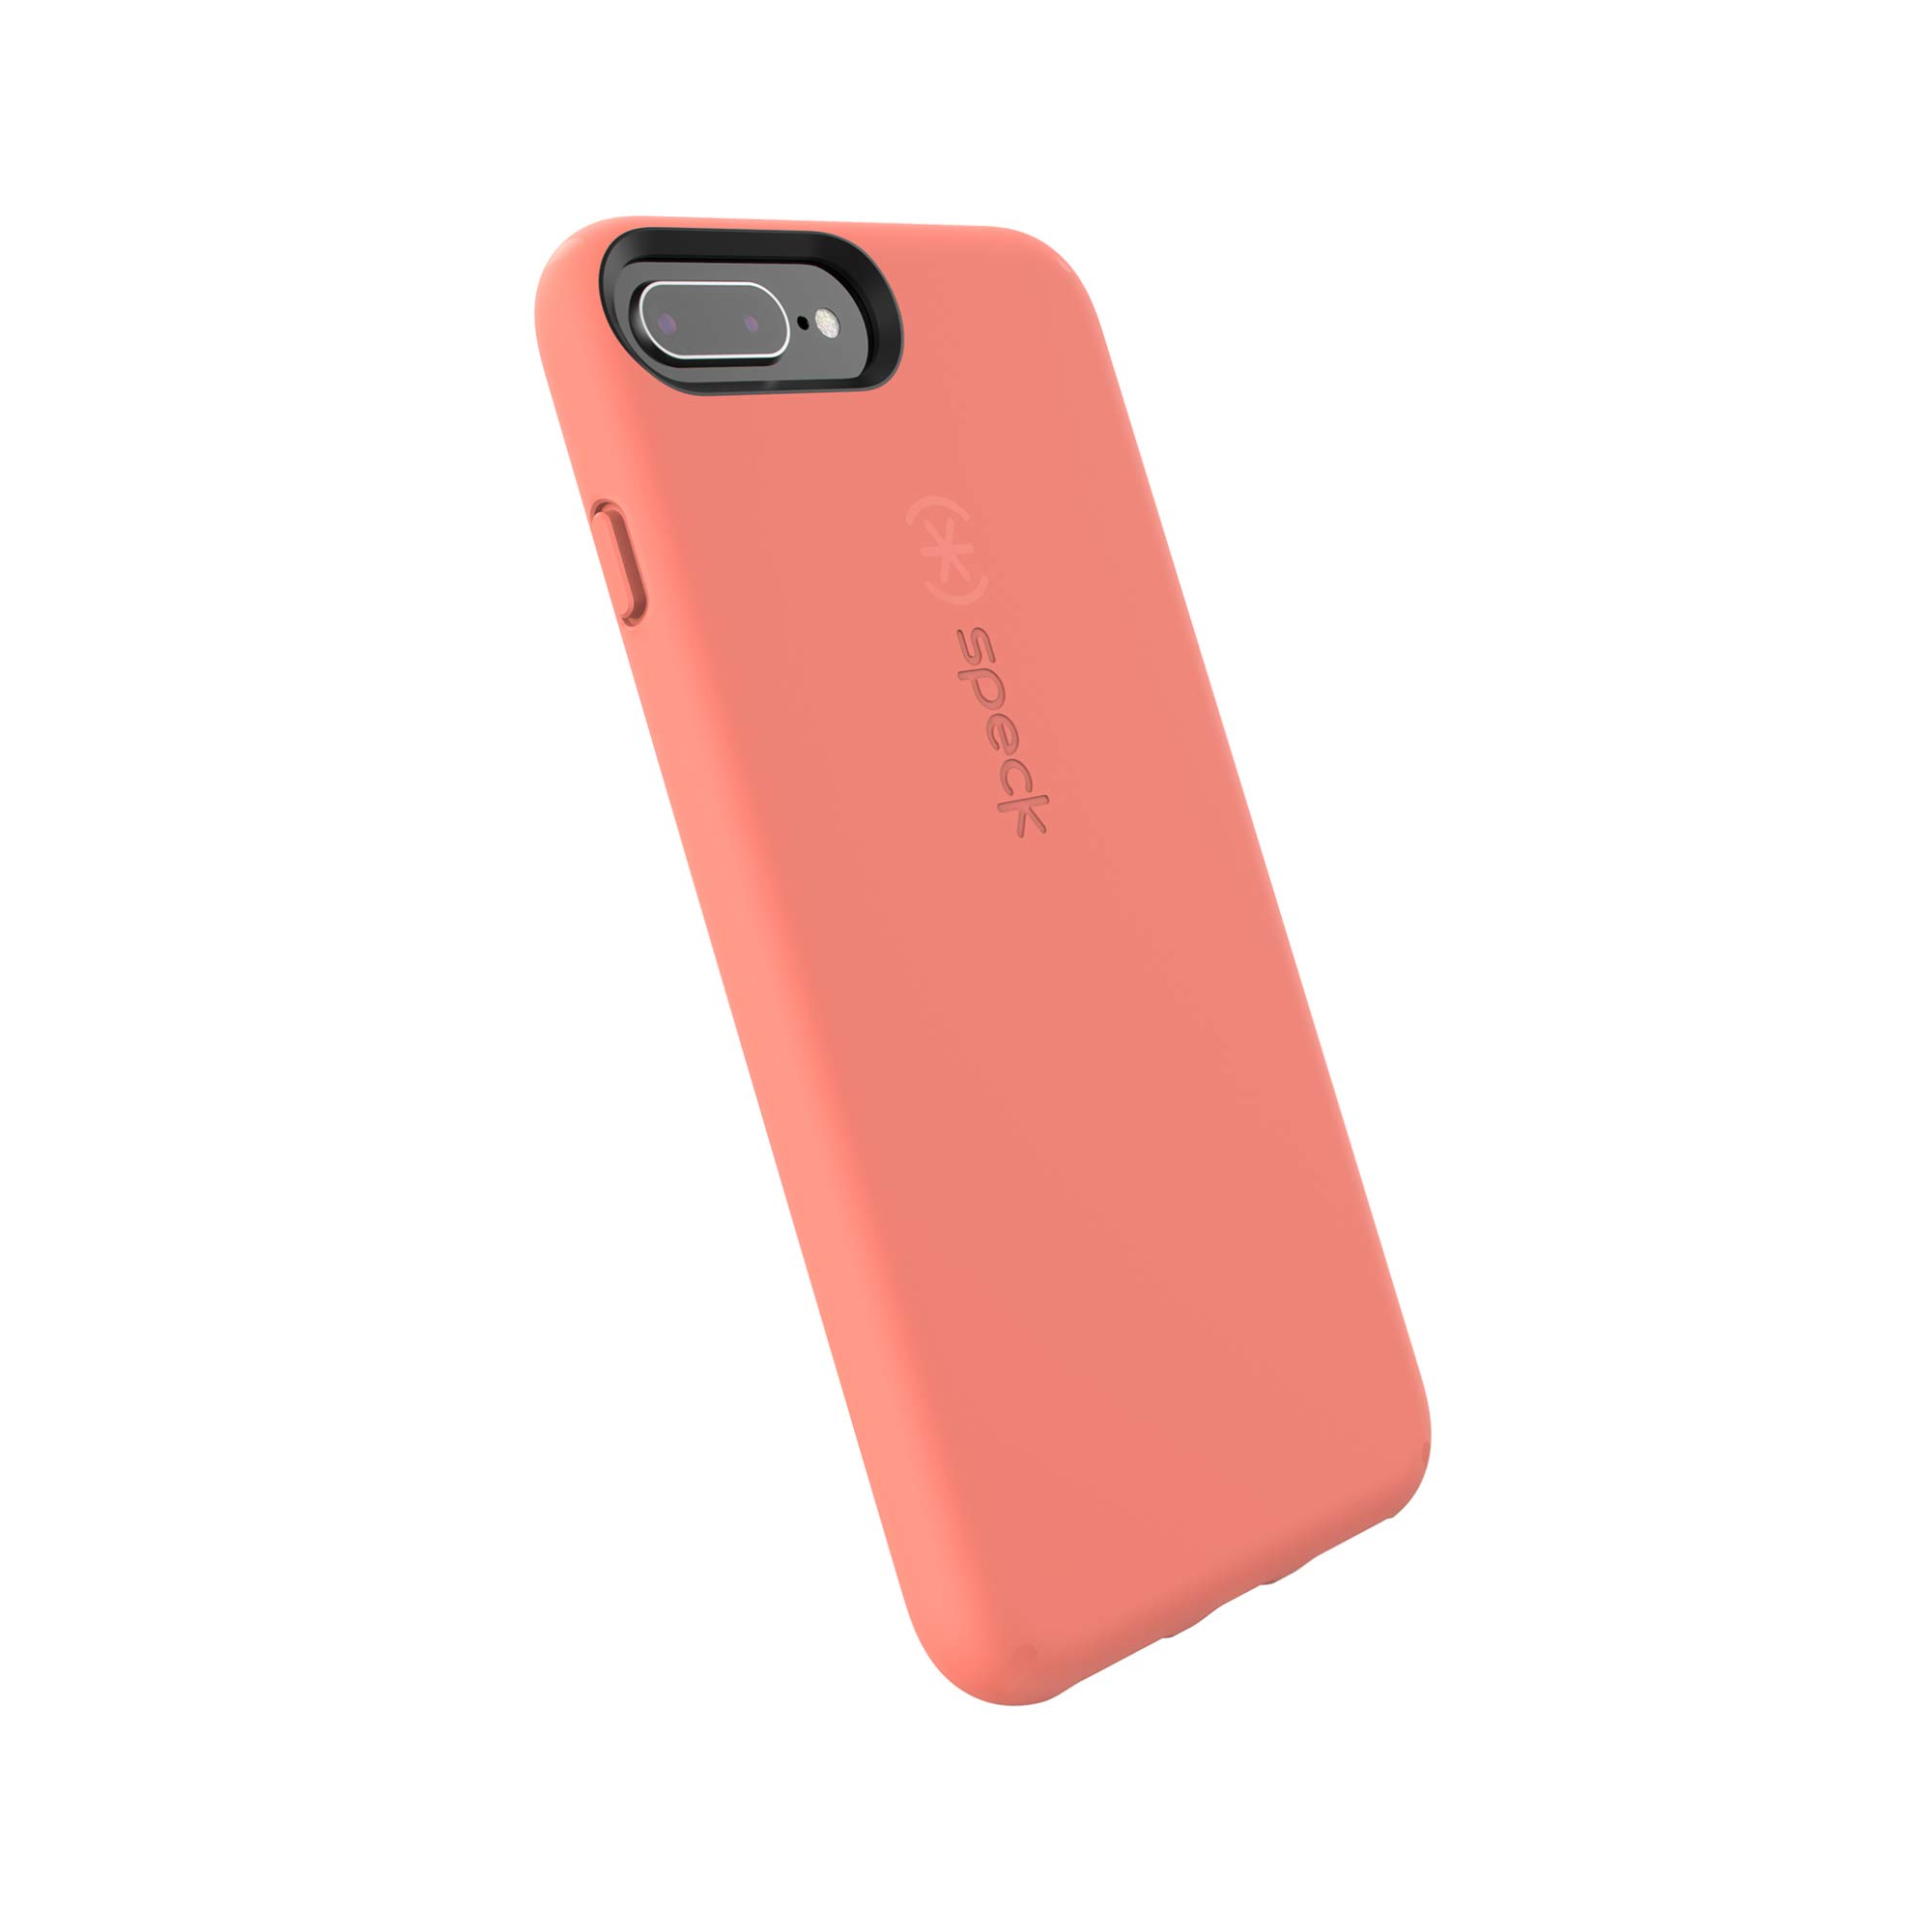 Speck Products CandyShell Fit Cell Phone Case for iPhone 8 Plus - Apricot Peach/Apricot Peach